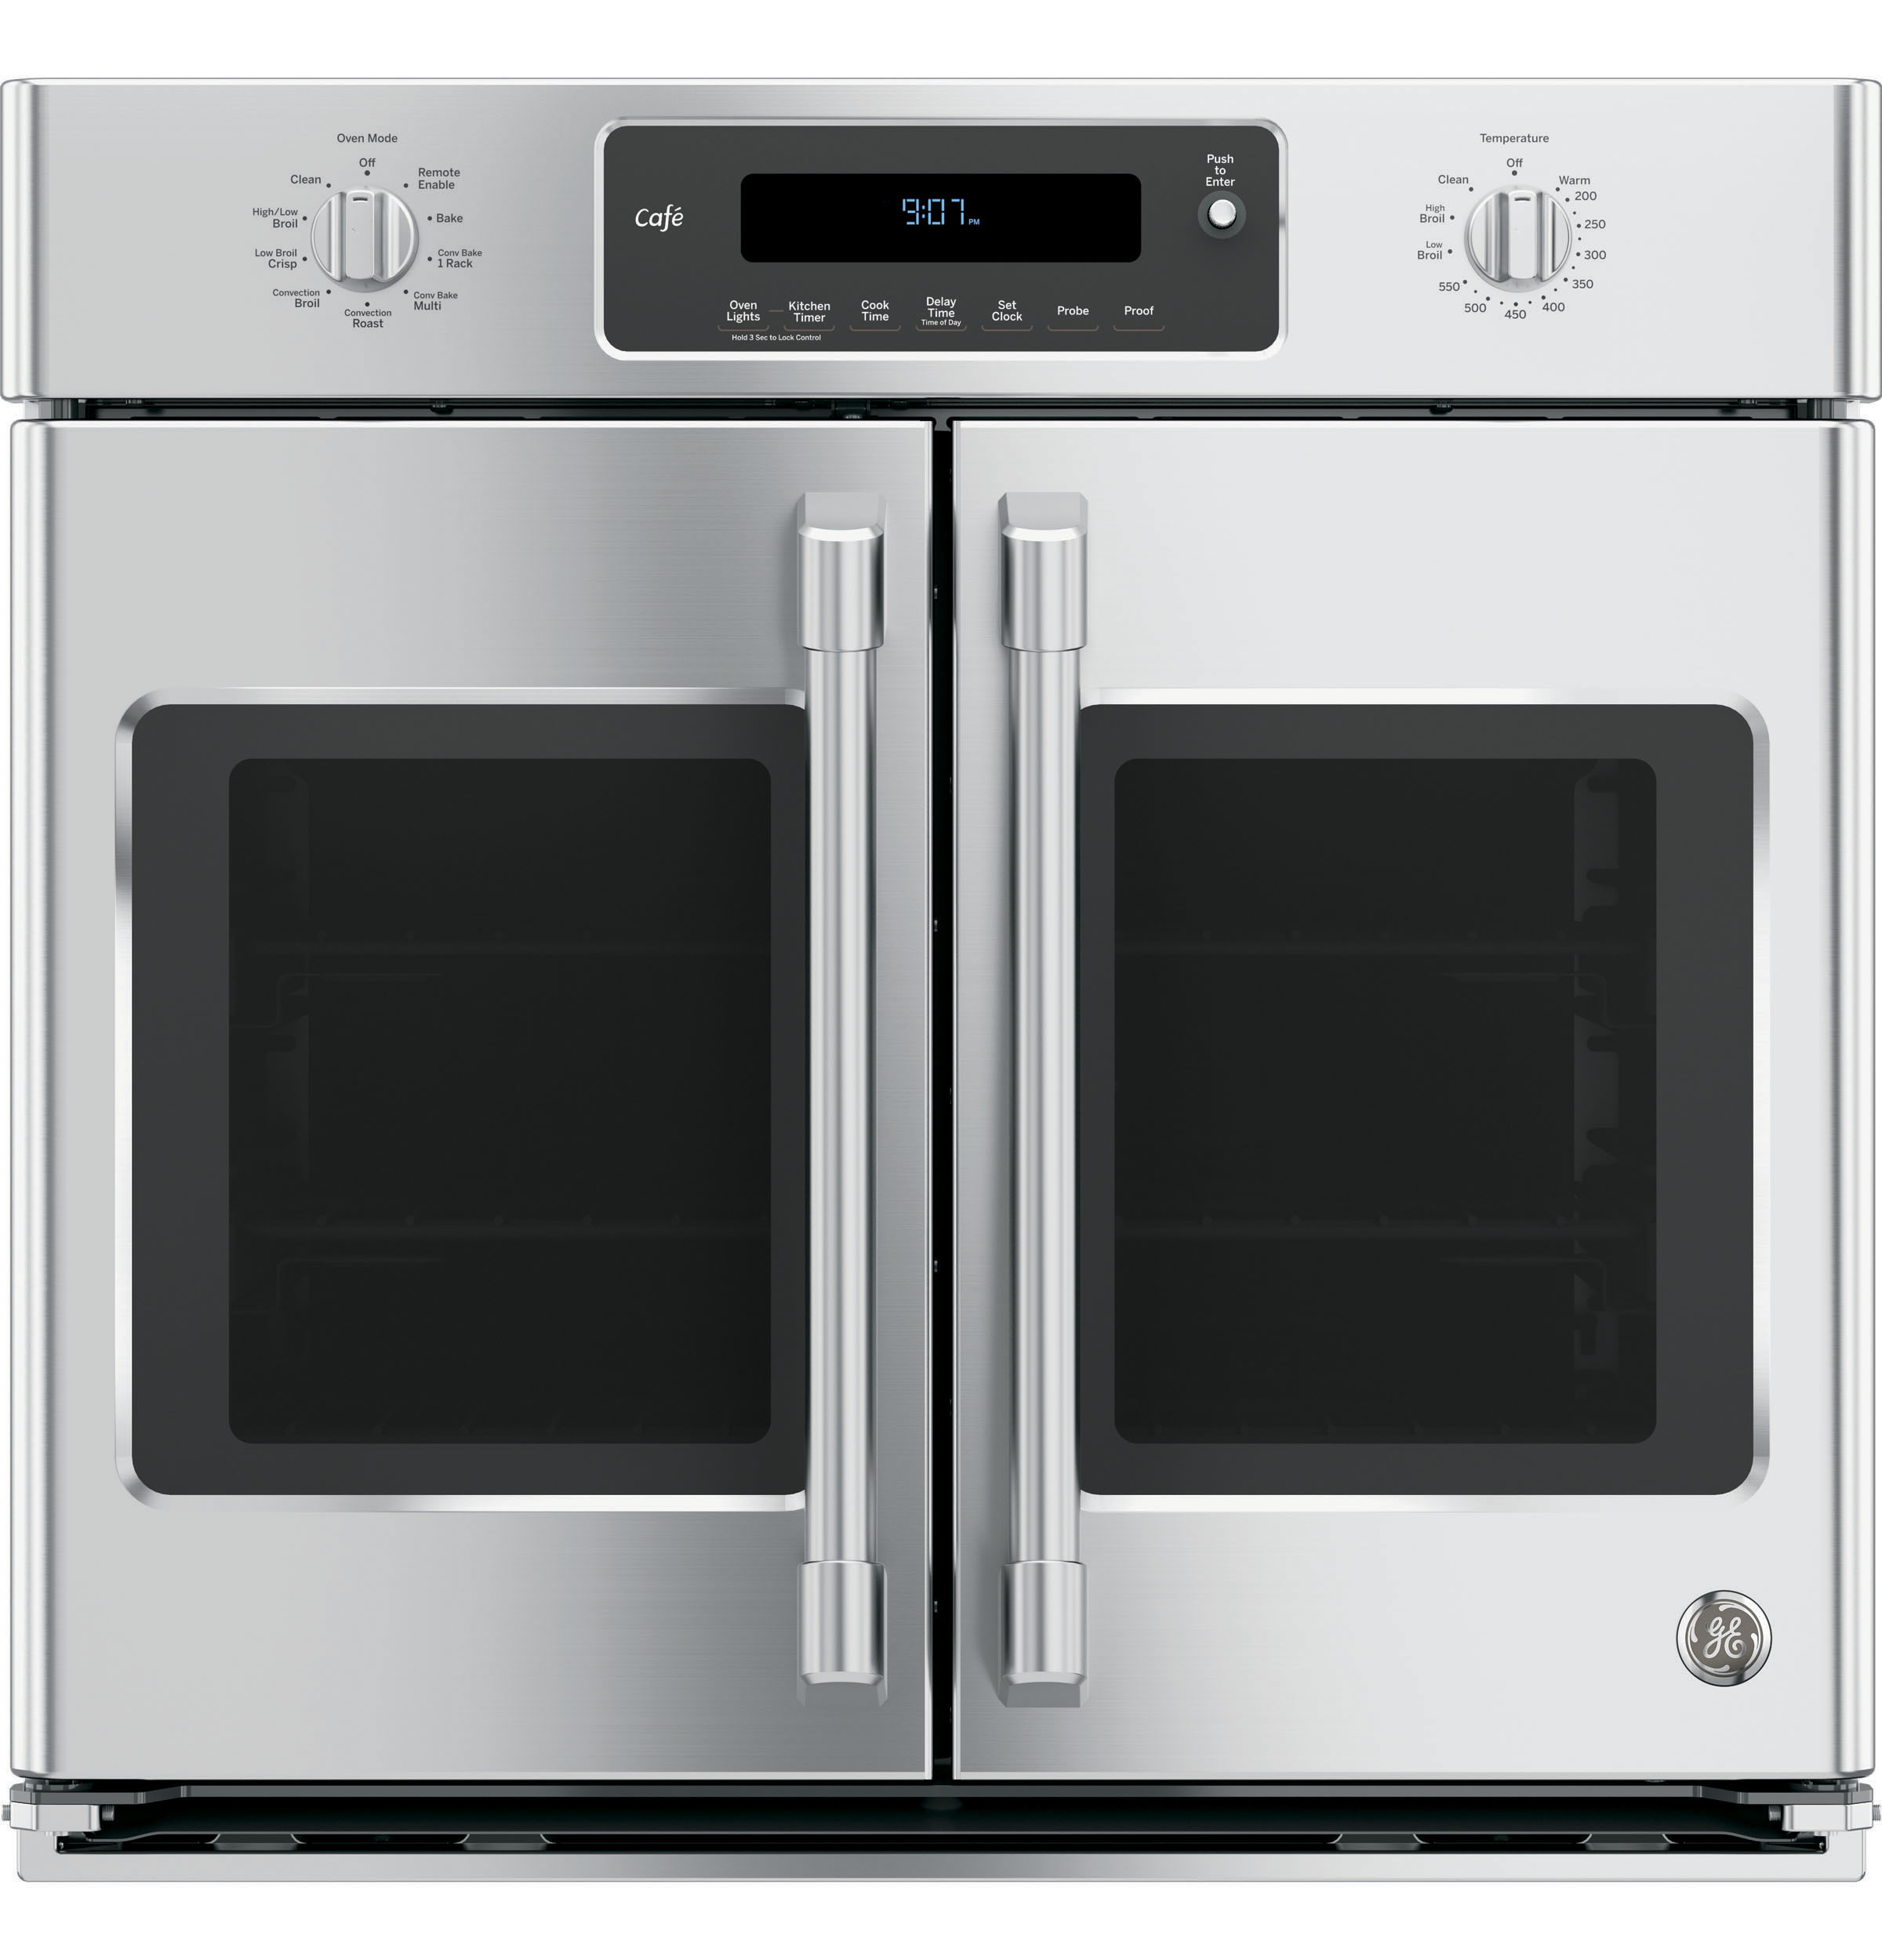 cu slide view with steel rc range toaster cleaning rcwilley store willey single jsp kitchenaid electric inch oven ranges stainless cooking in ft appliances convection furniture self